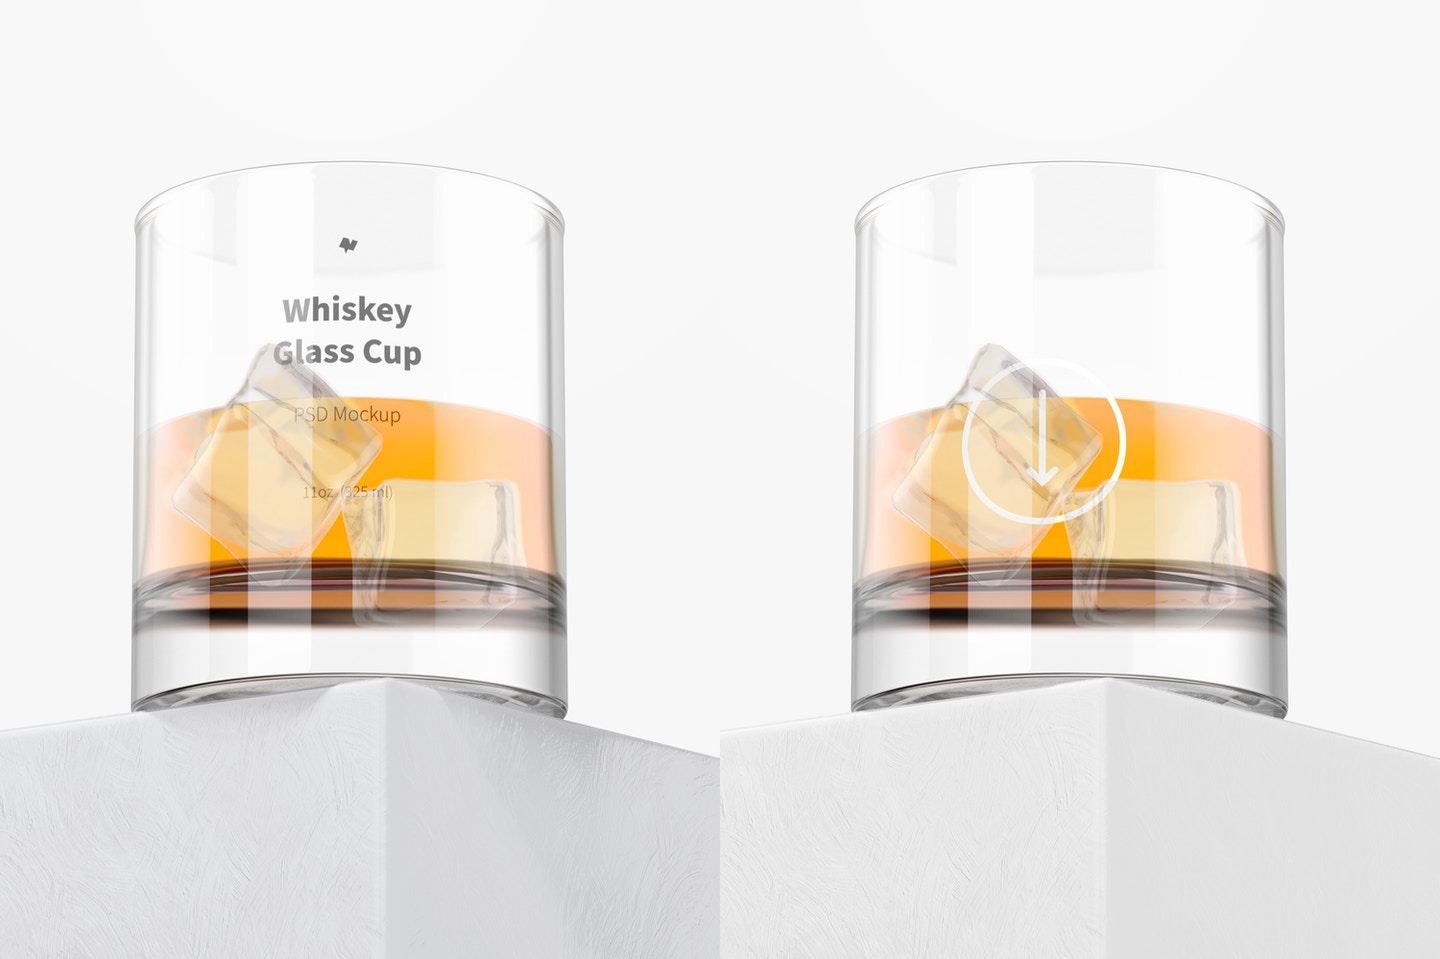 11 oz Whiskey Glass Cup Mockup, Perspective